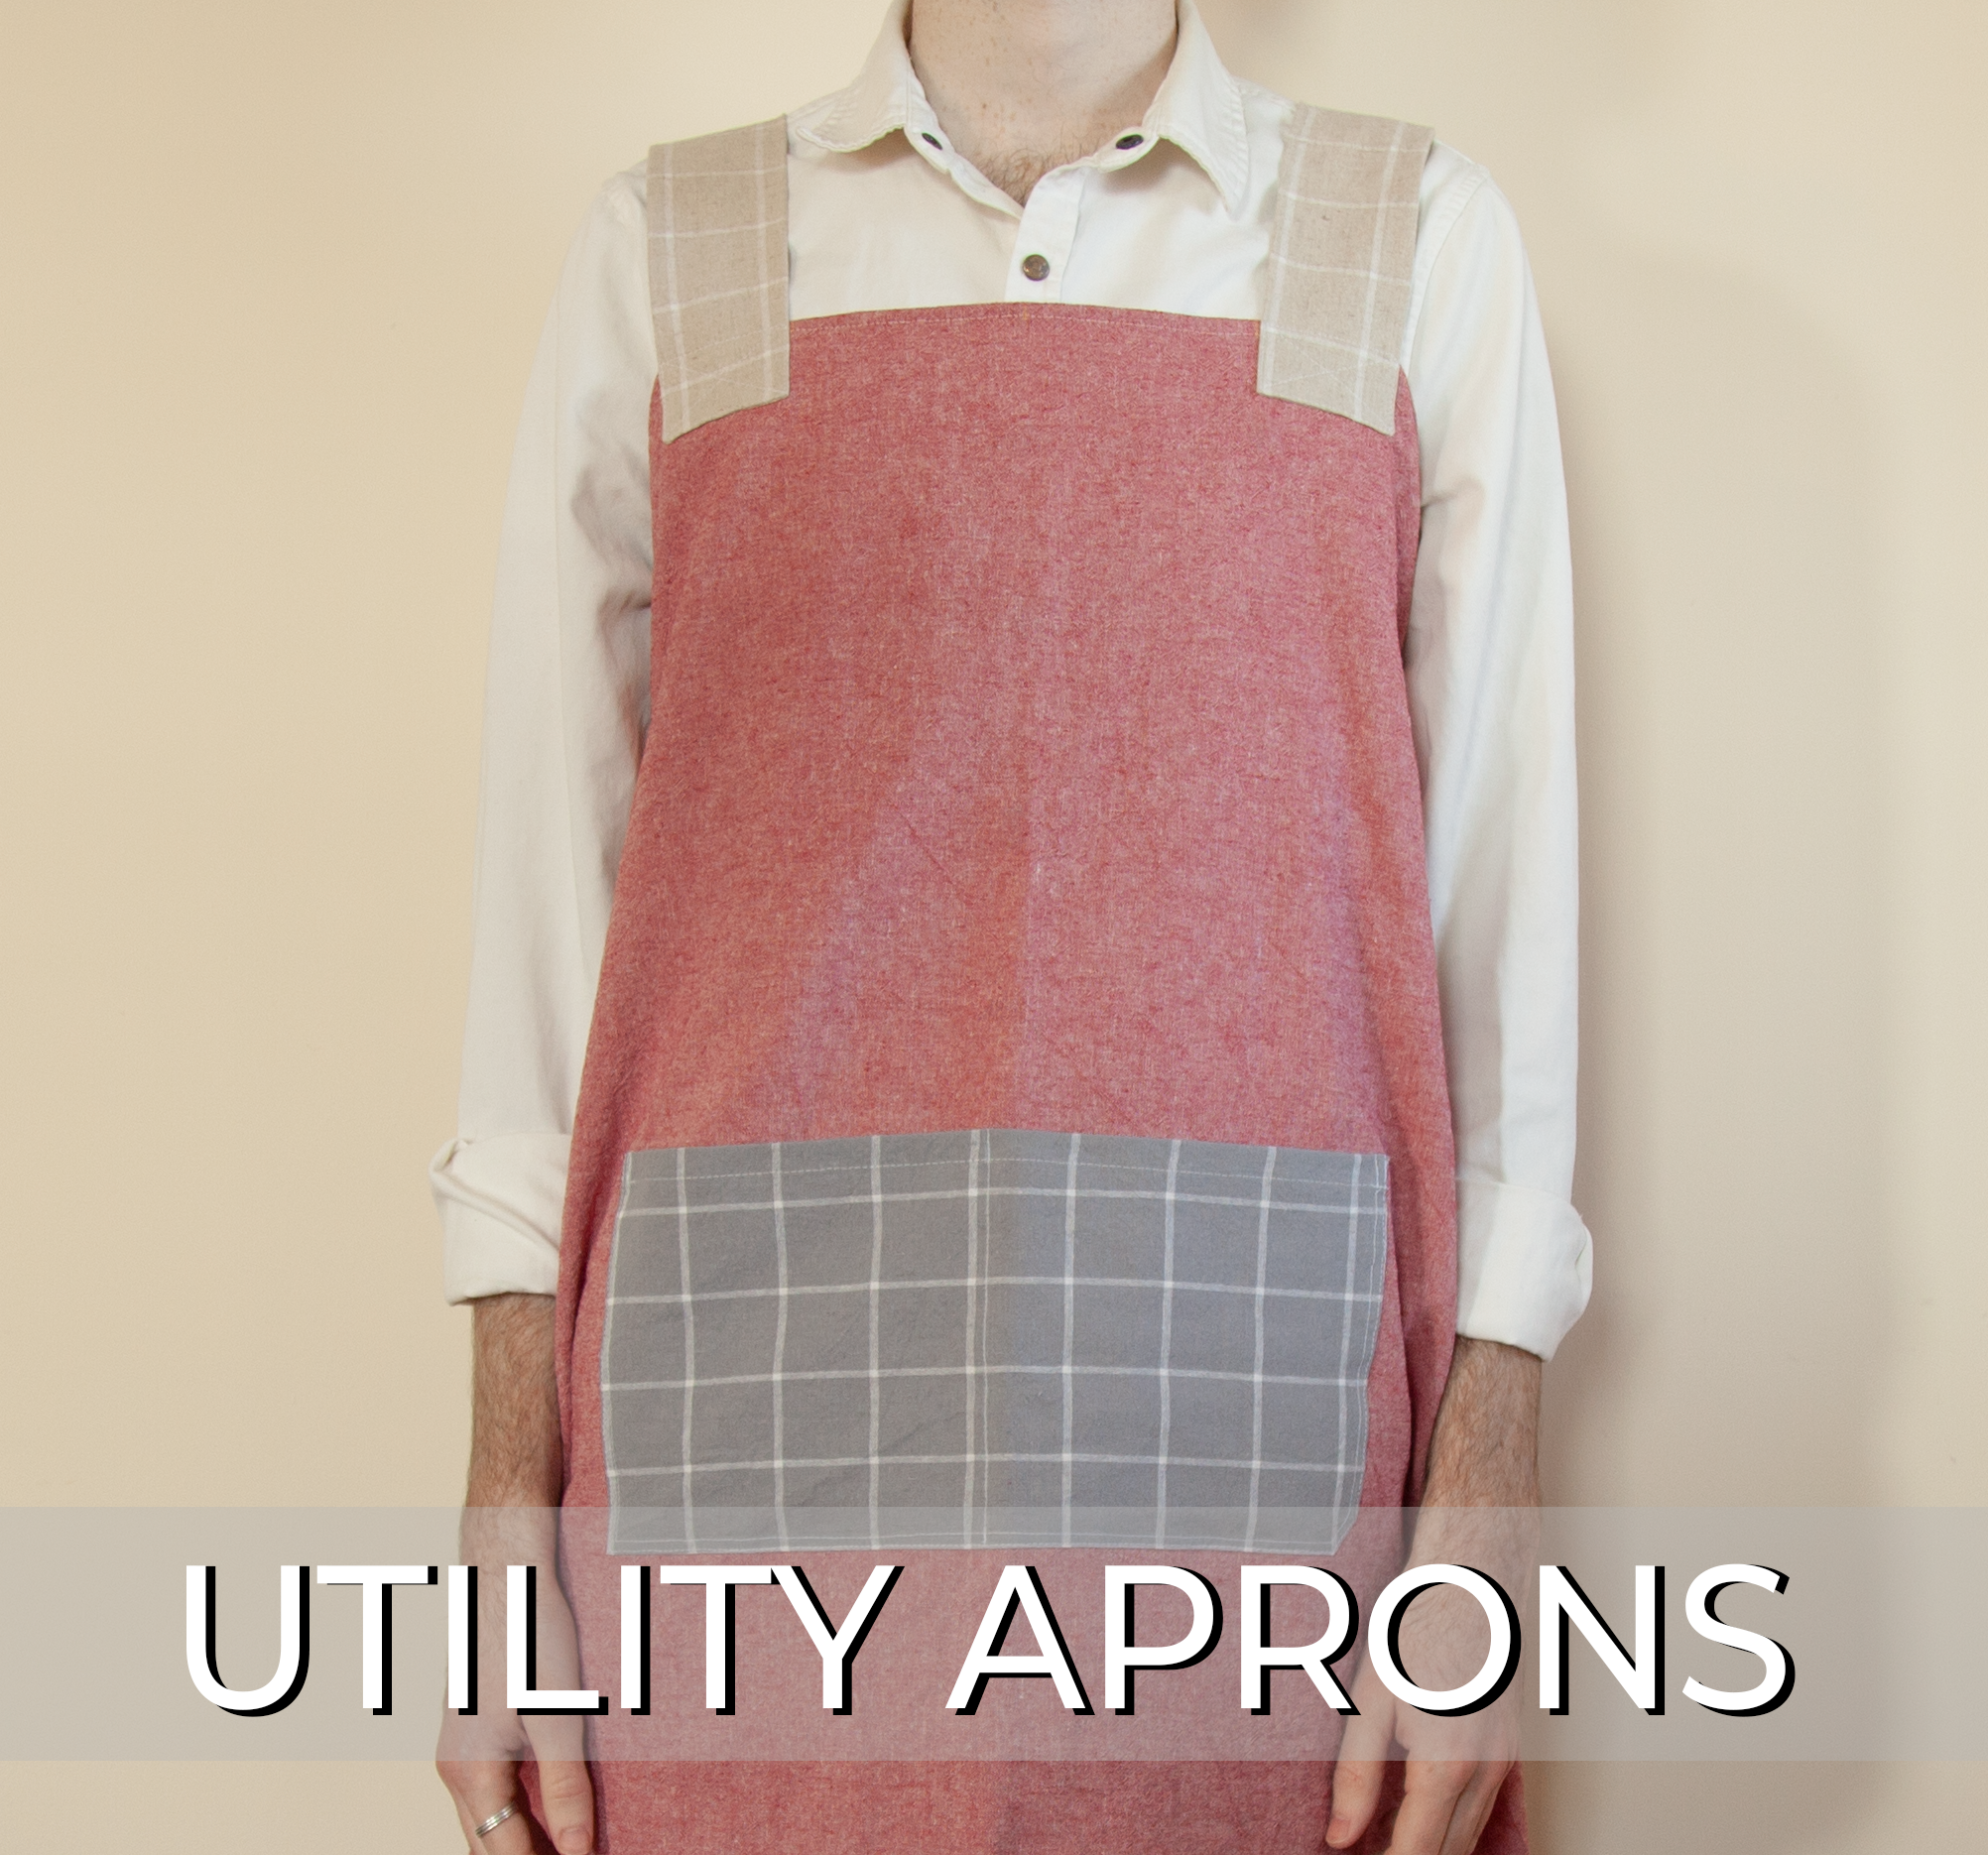 aprons_category.png